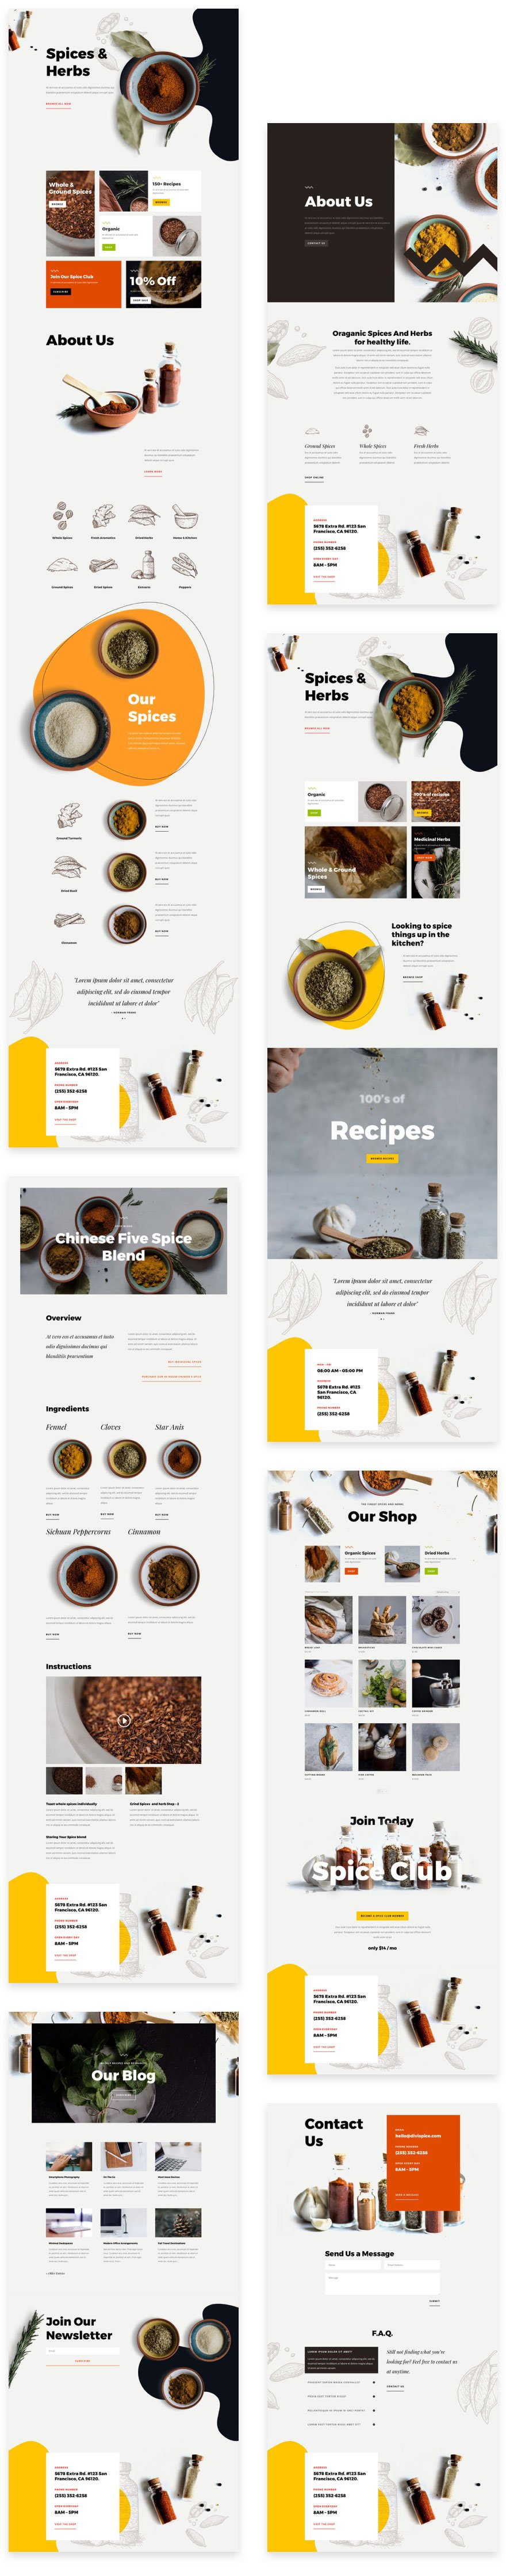 divi spice shop layout pack